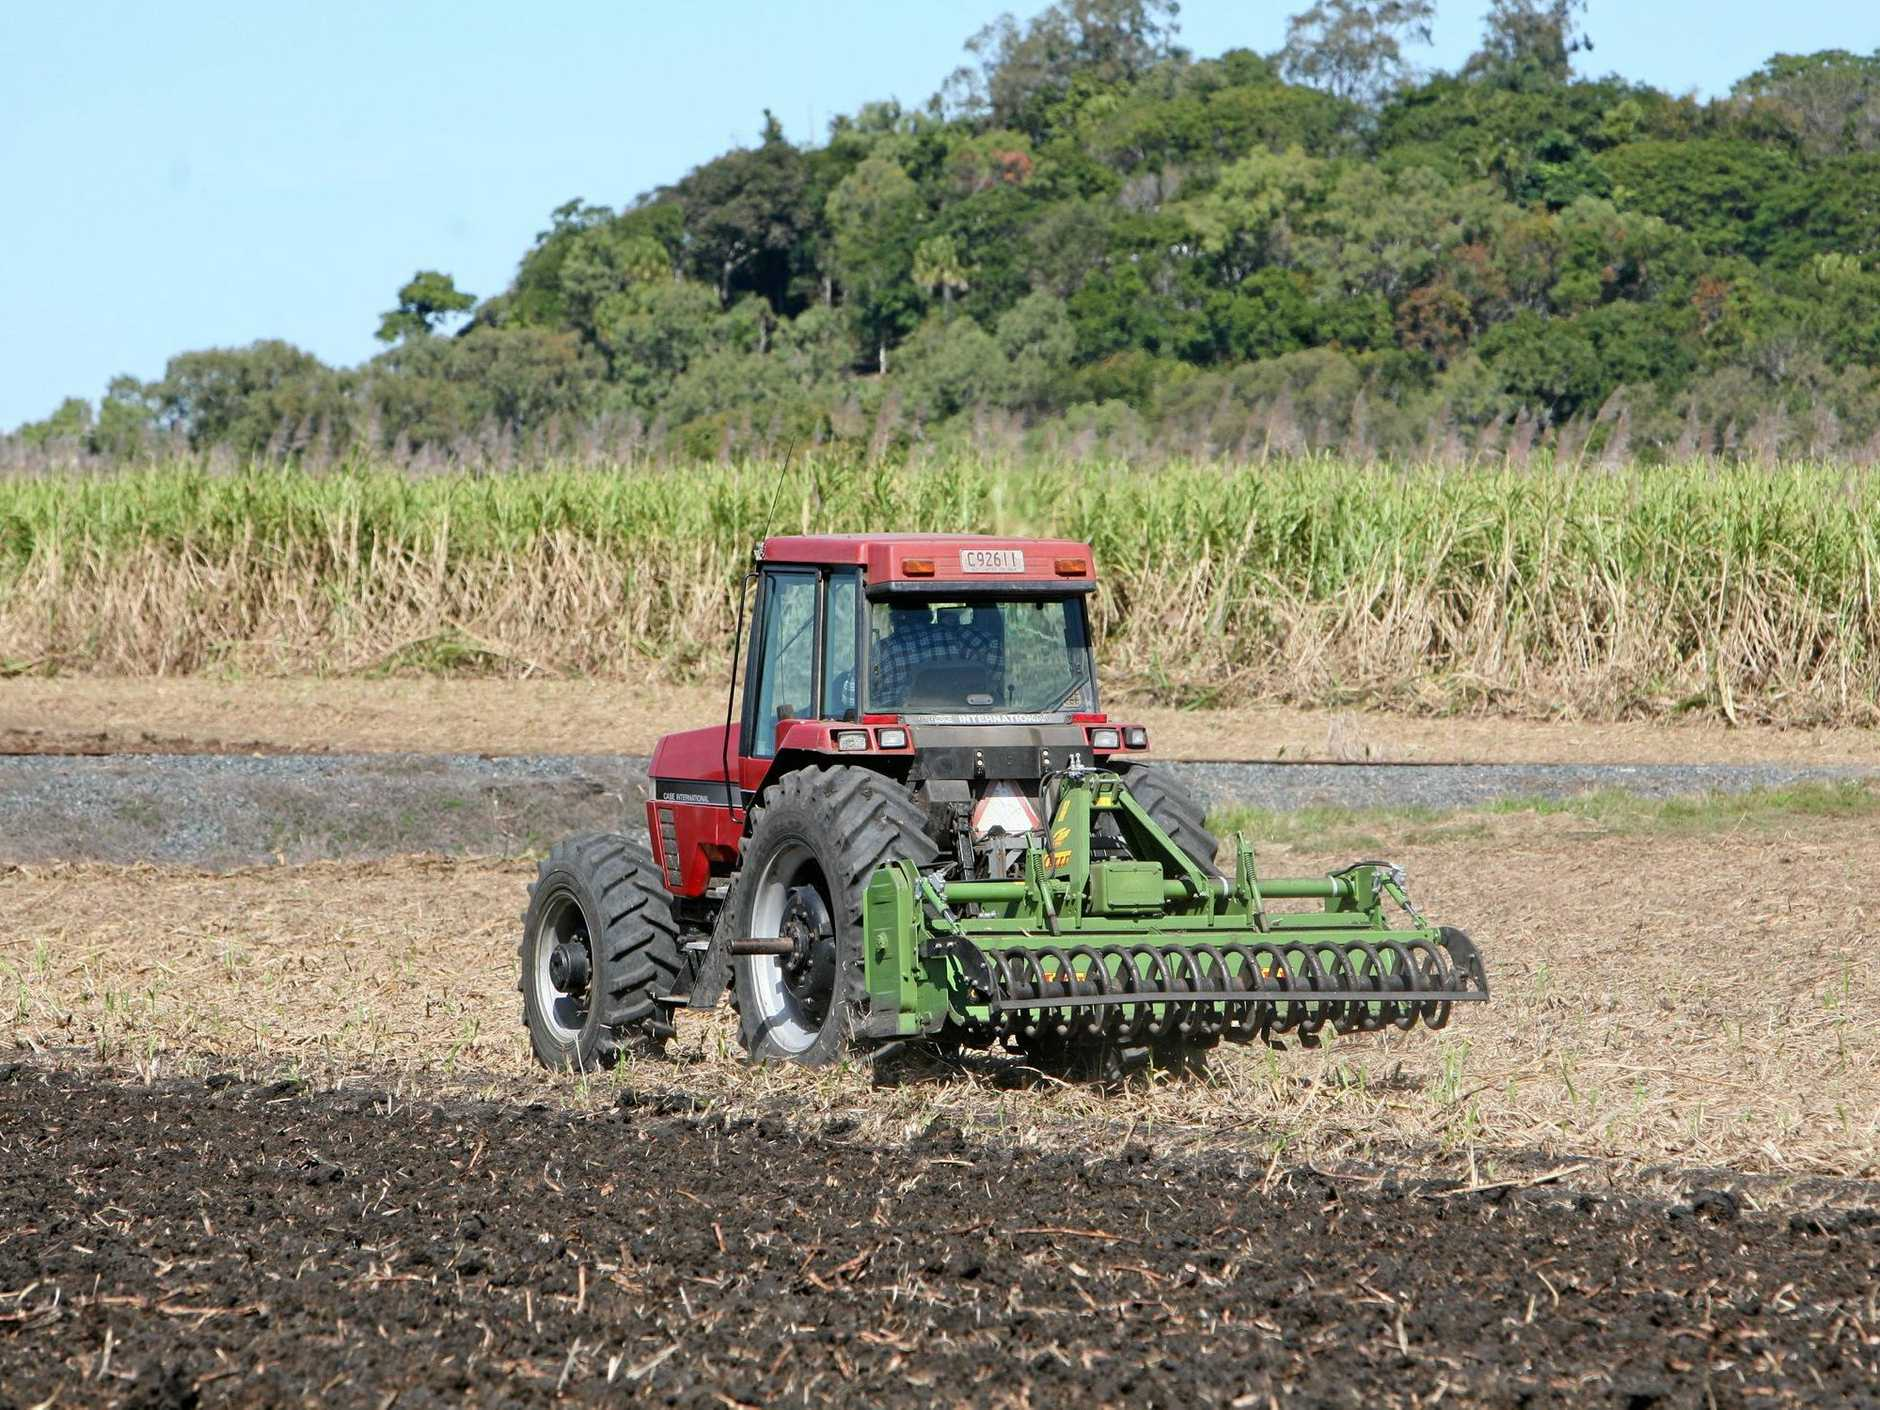 A new agriculture project is expected to revolutionise the industry.